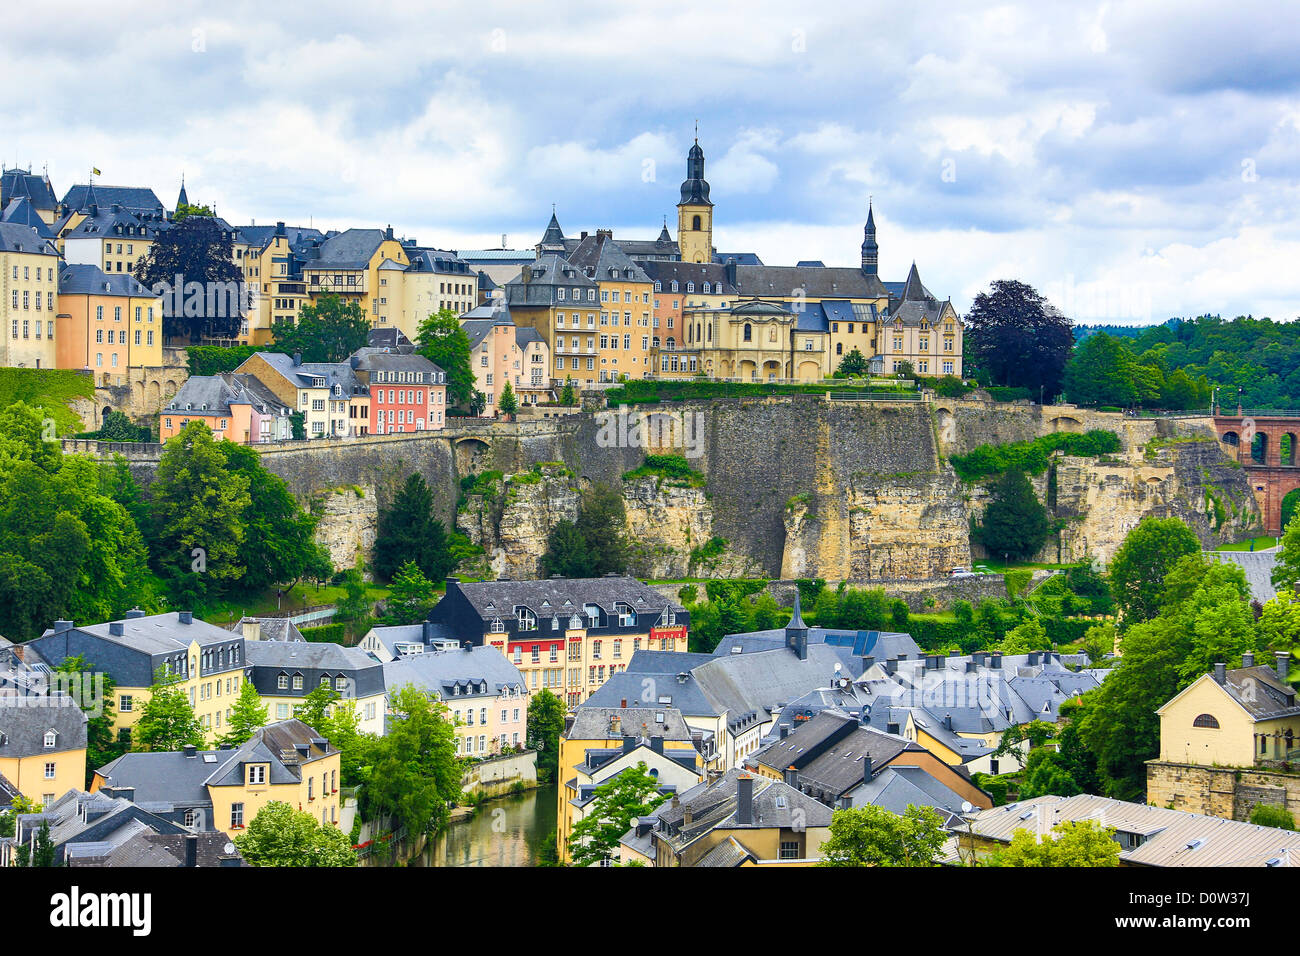 Luxemburg, Europe, travel, City, world heritage, architecture, center, city center, downtown, old town, skyline, - Stock Image